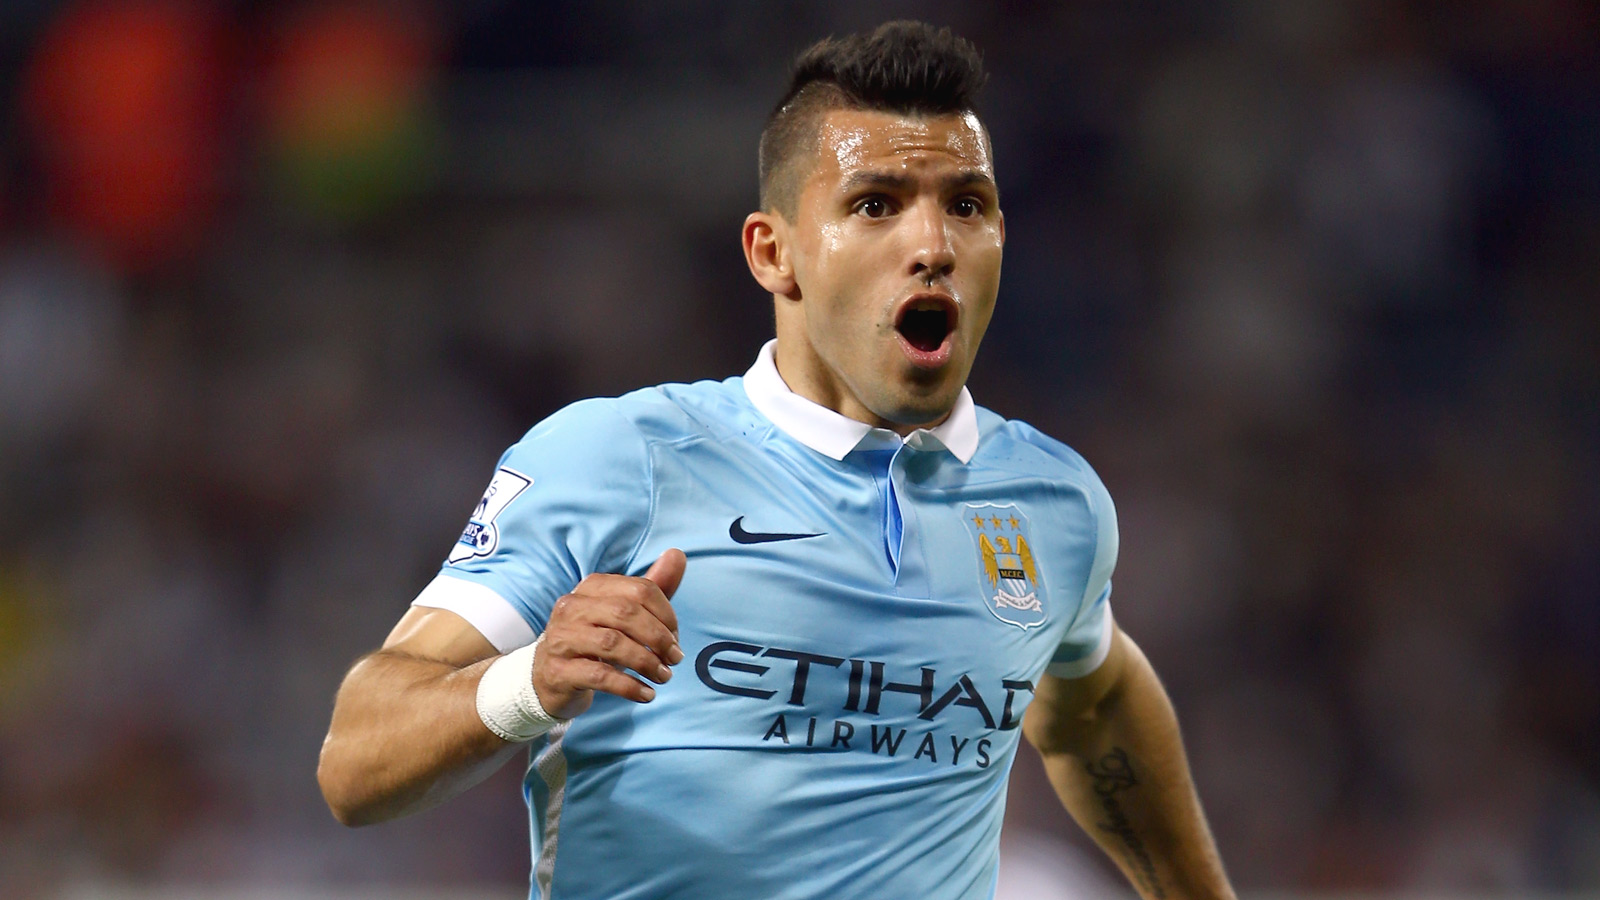 Man City striker Aguero in contention to start against Chelsea